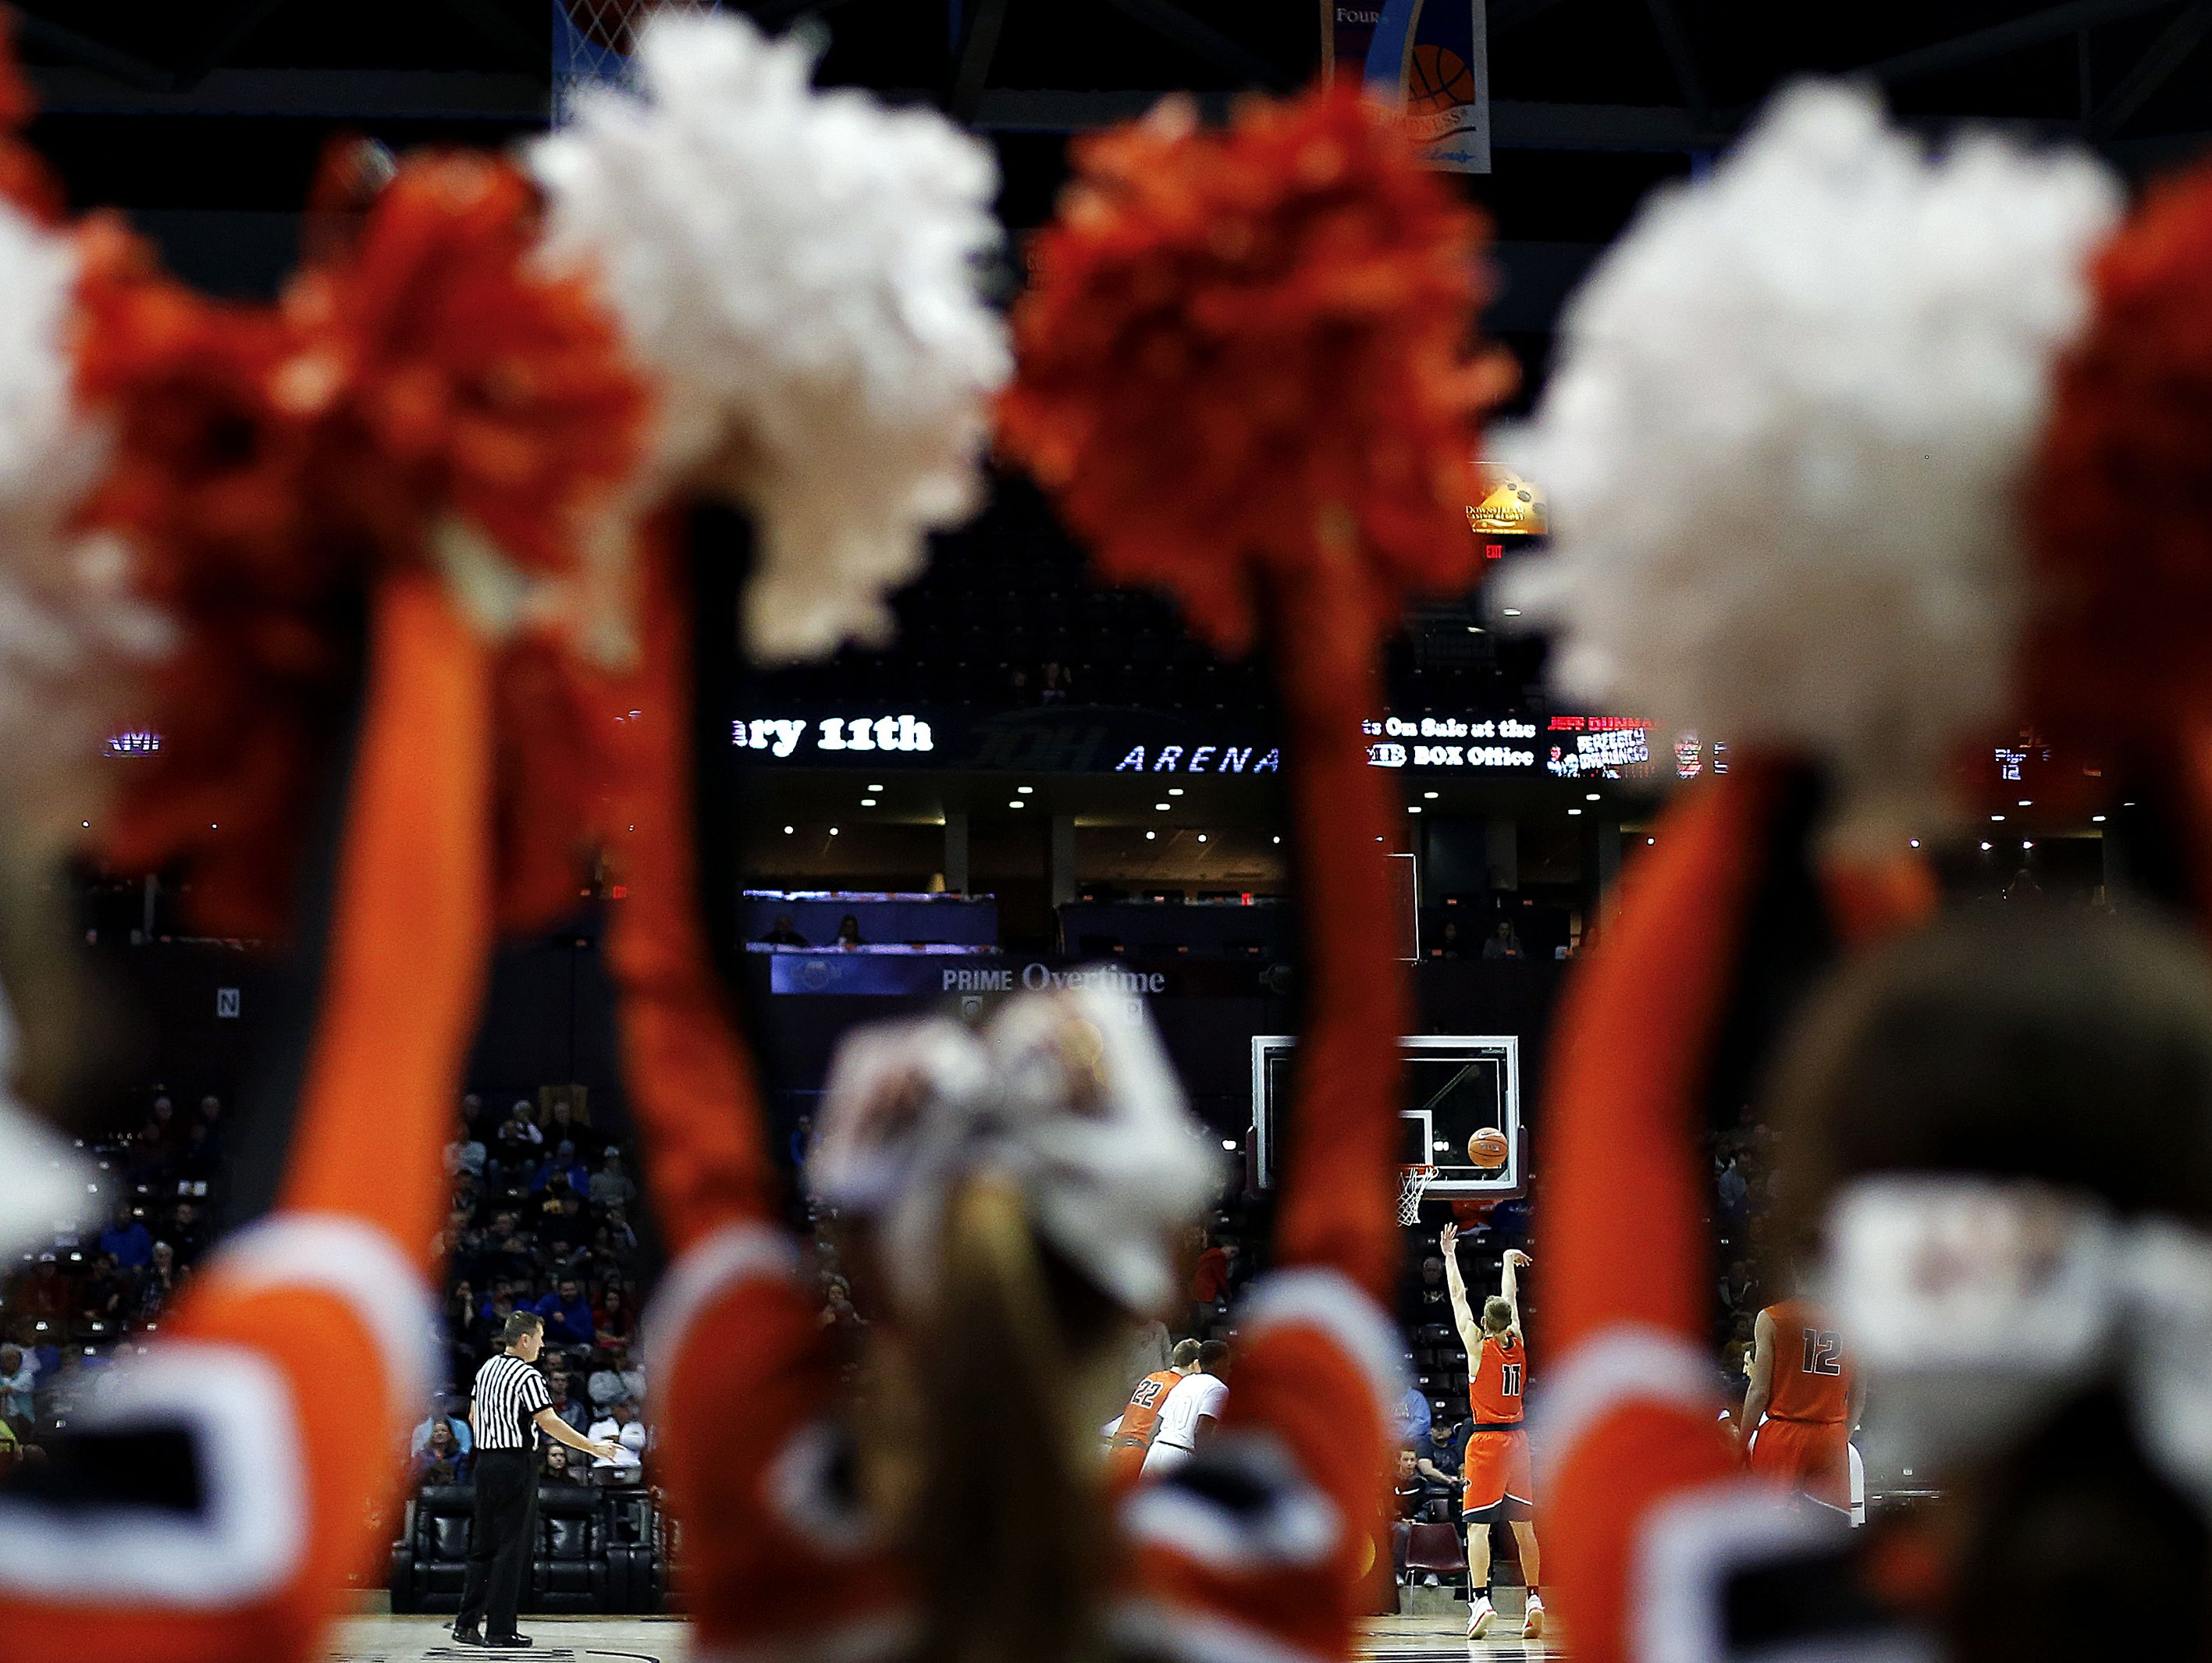 Republic High School guard Ty Stevens (11) shoots a free throw during second quarter action of the 2017 Bass Pro Tournament of Champions high school basketball game between the Madison Prep Academy Chargers (Baton Rouge, La.) and the Republic High School Tigers (Republic, Mo.) at JQH Arena in Springfield, Mo. on Jan. 13, 2017.